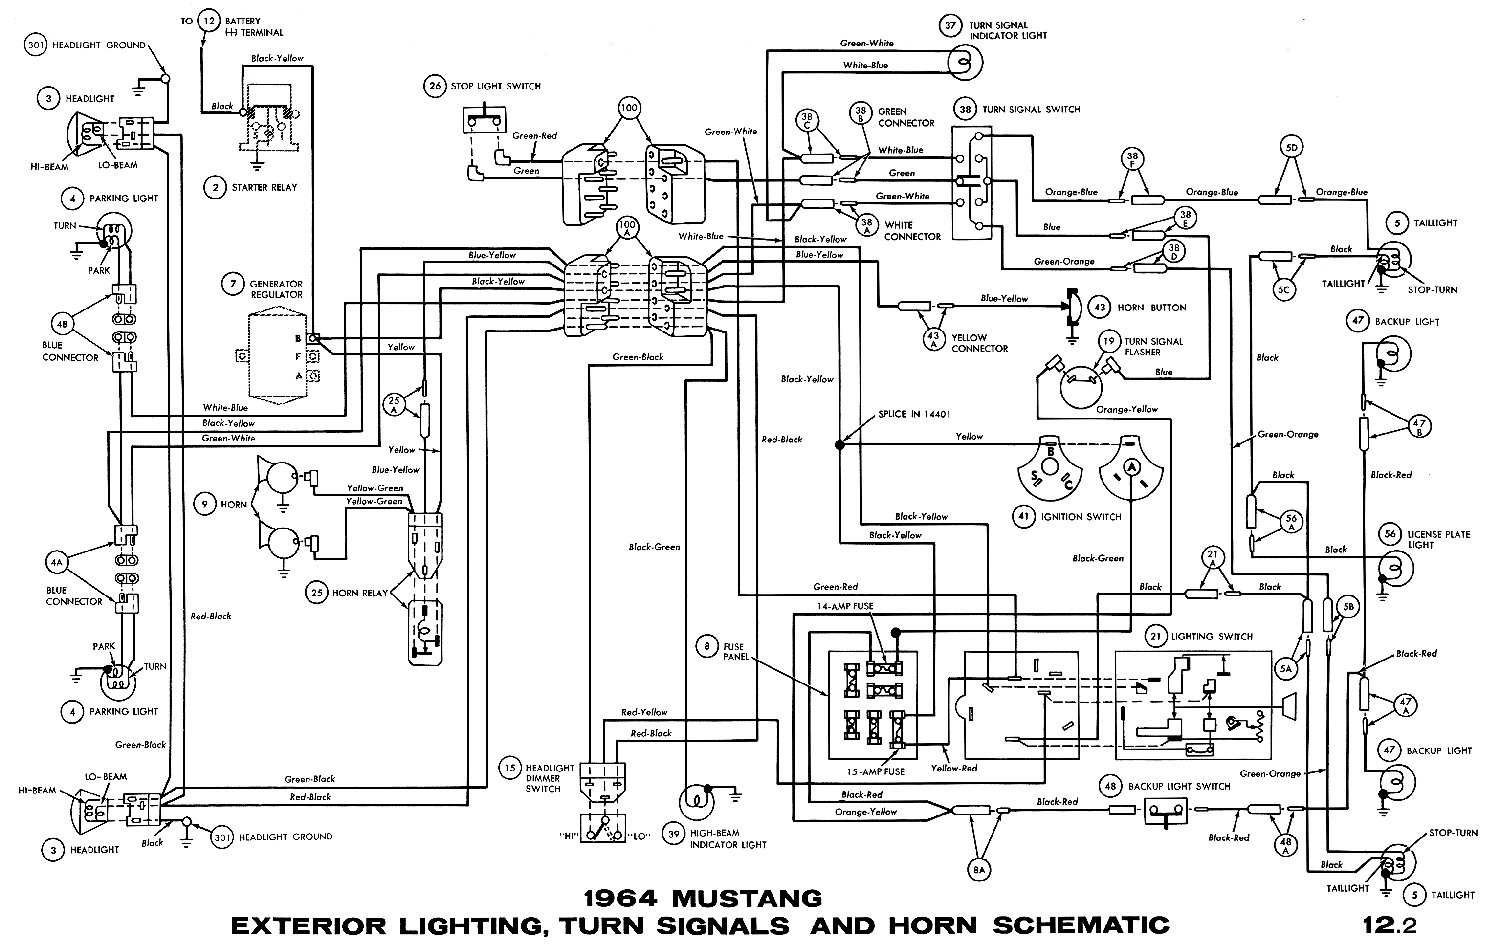 hight resolution of 1964 mustang wiring diagrams average joe restoration 1964 mustang exterior lighting turn signals and horns